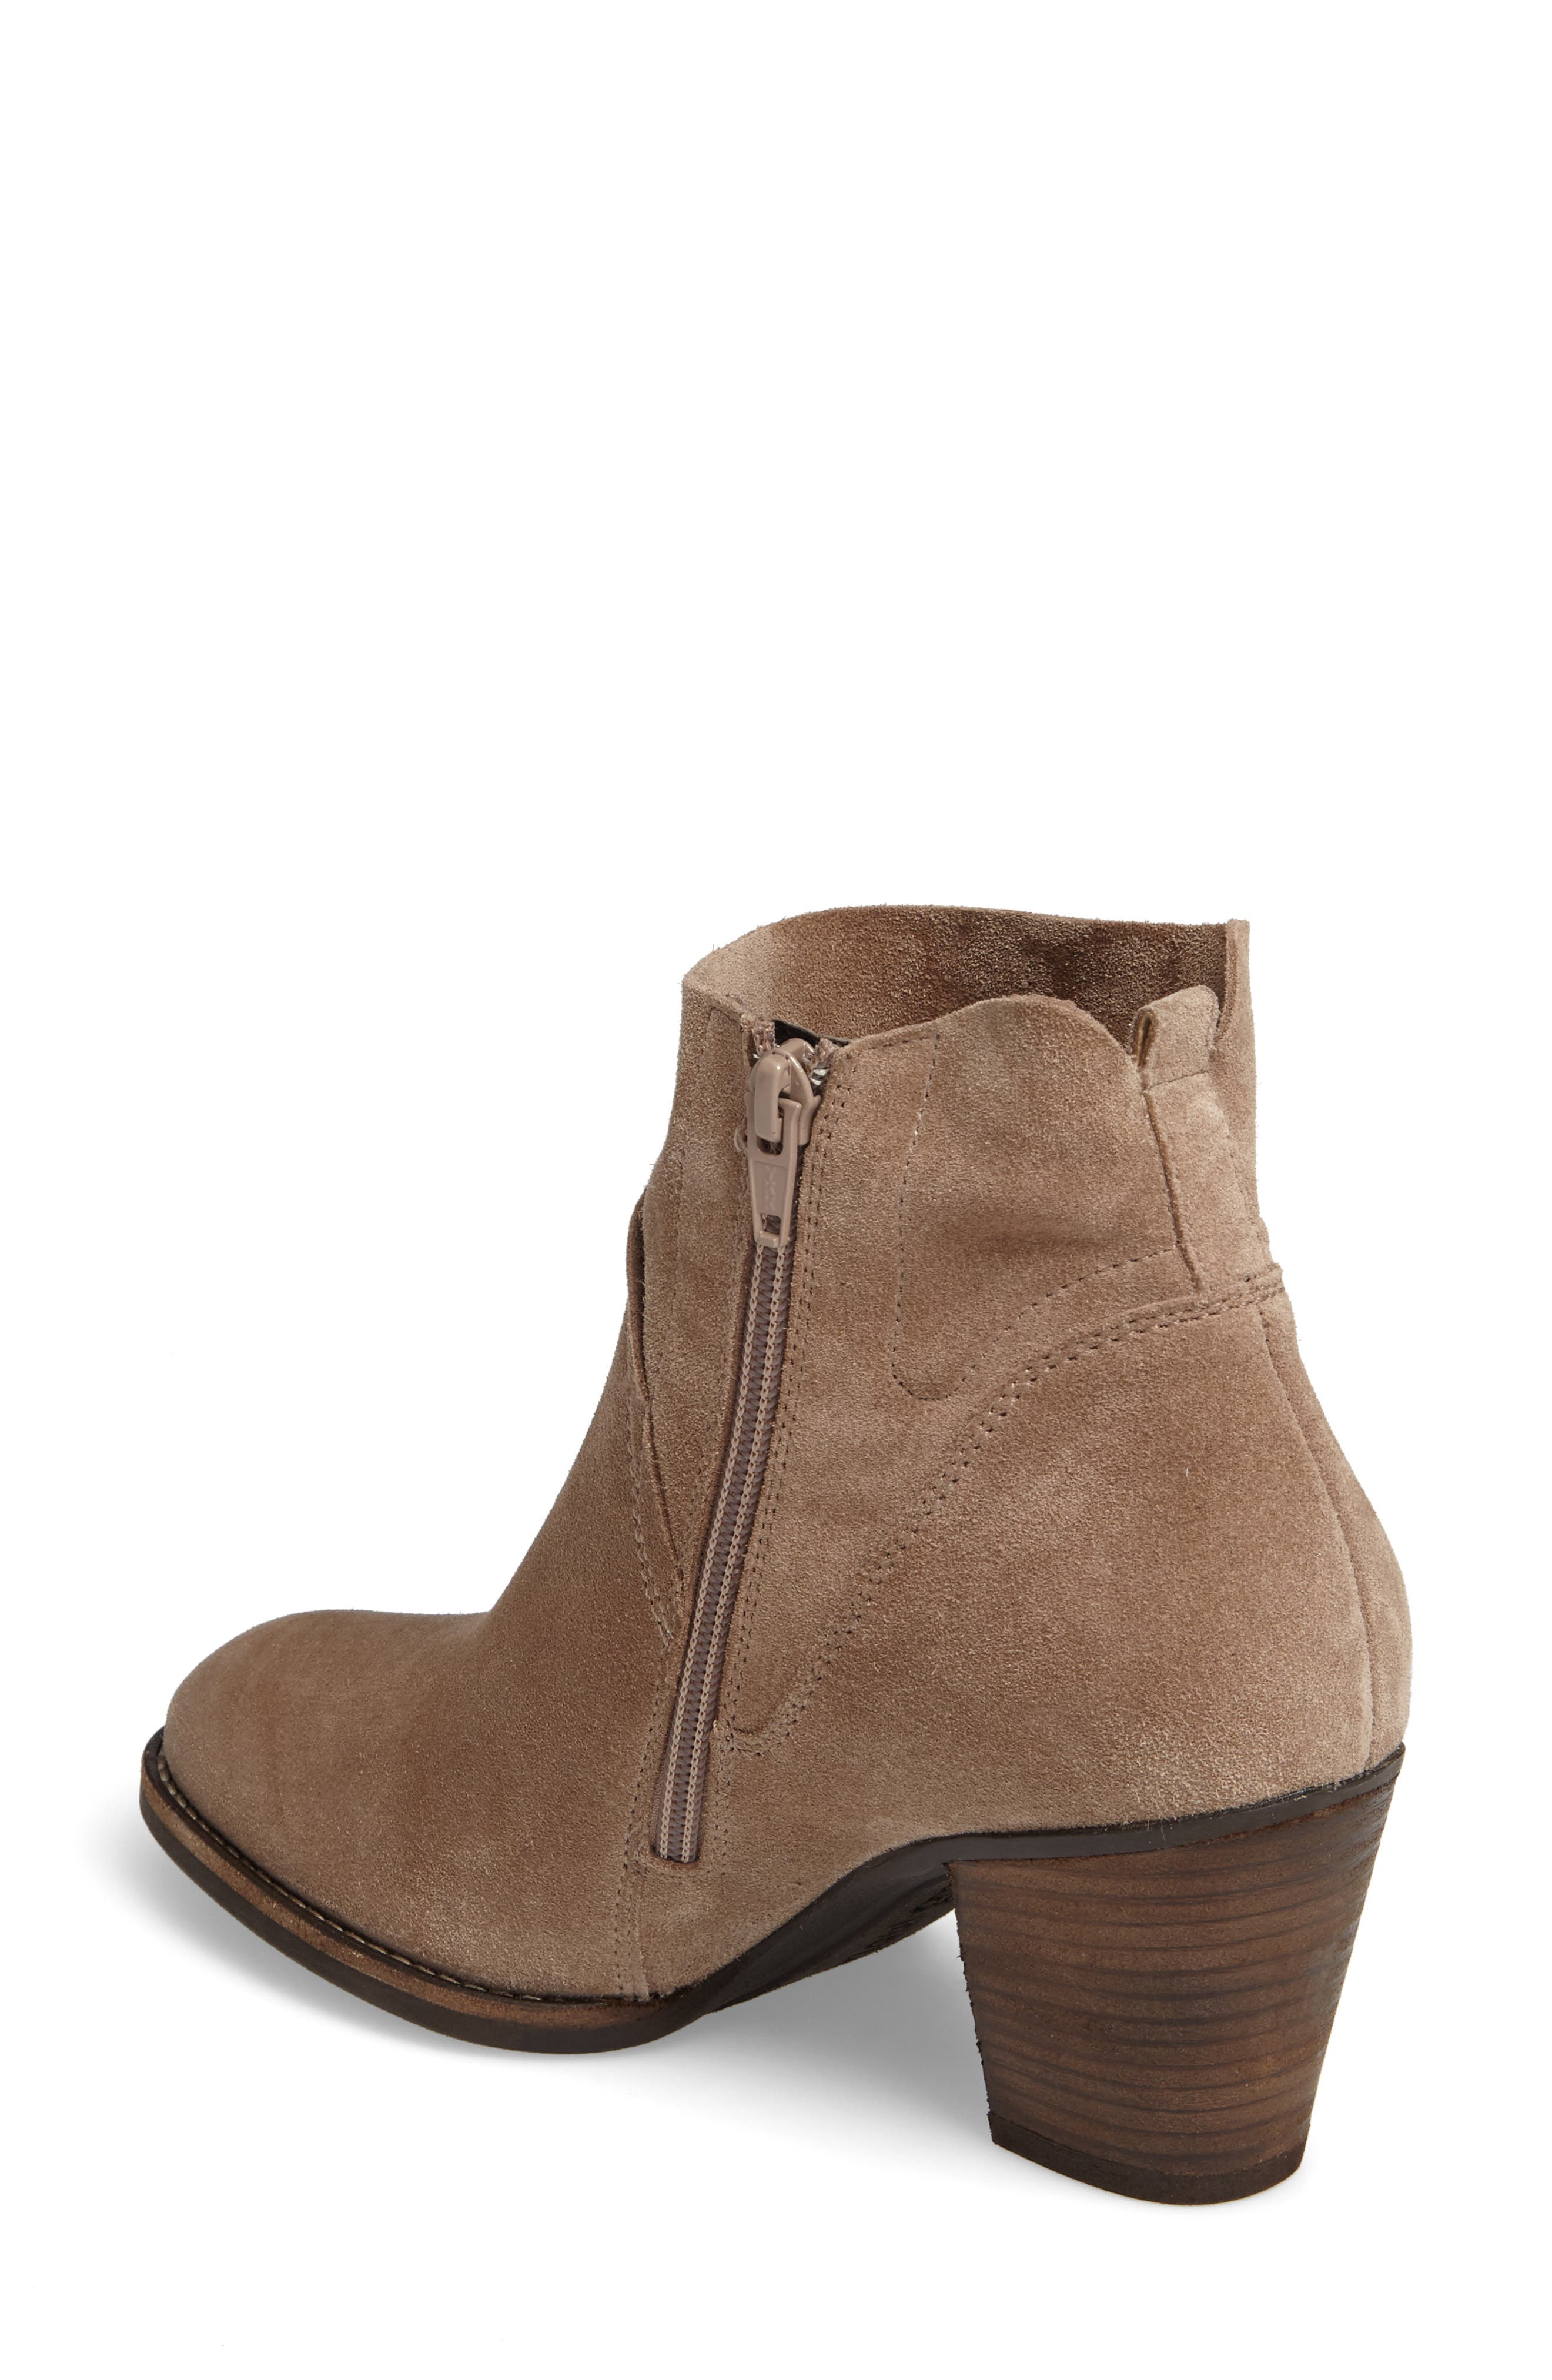 Nora Water Resistant Bootie,                             Alternate thumbnail 2, color,                             Antelope Hydro Suede